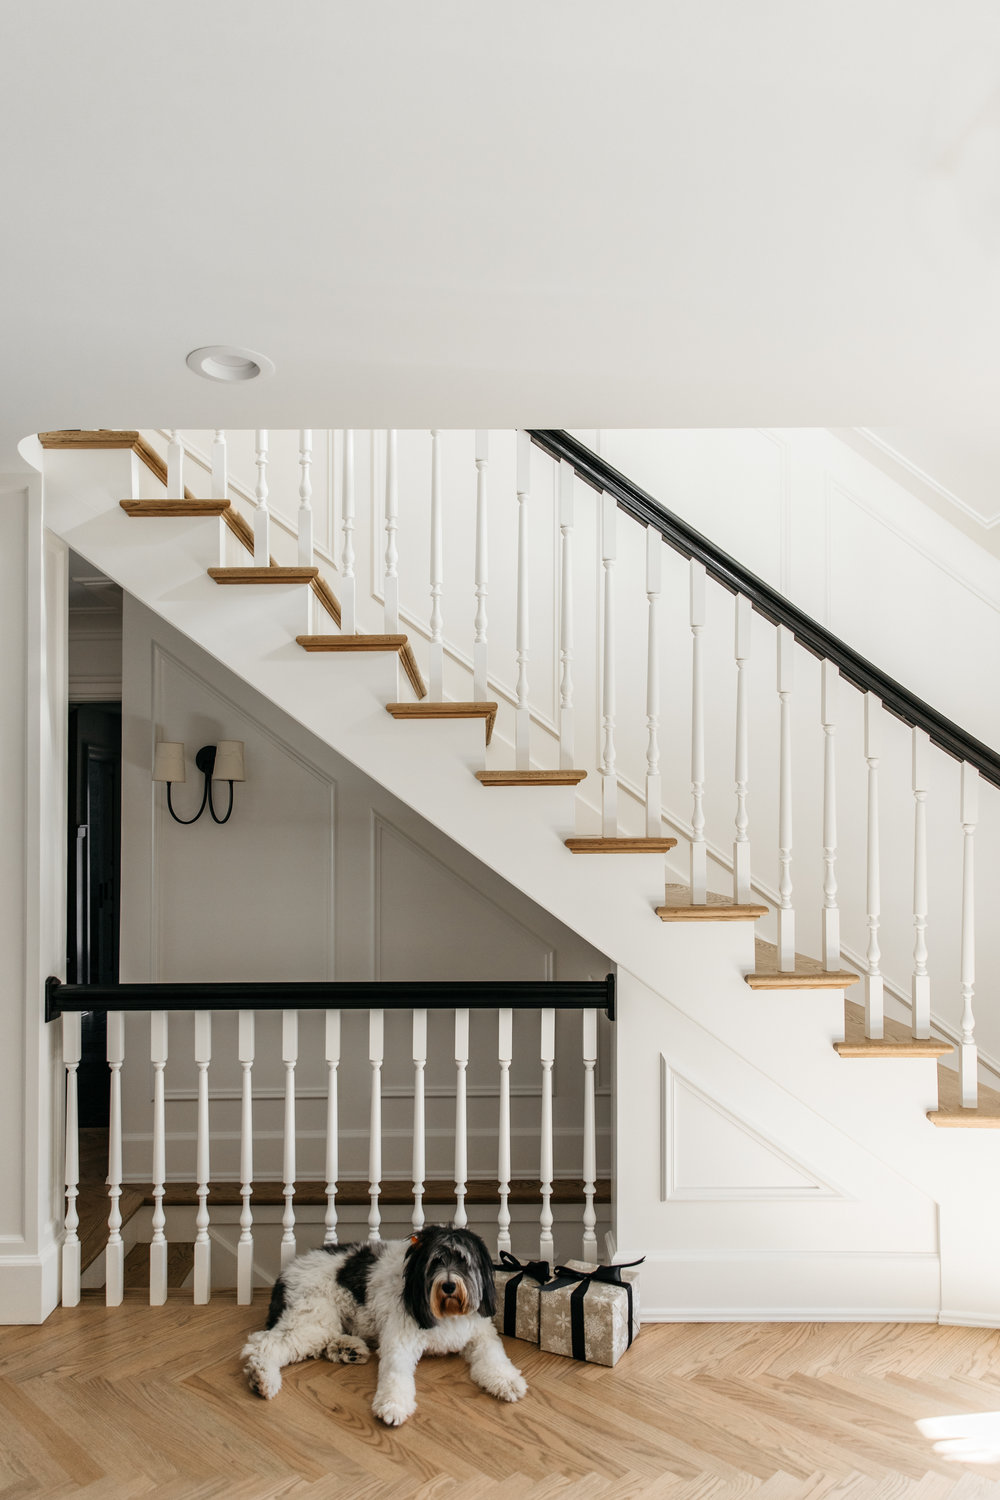 Staircase with white oak floors and puppy